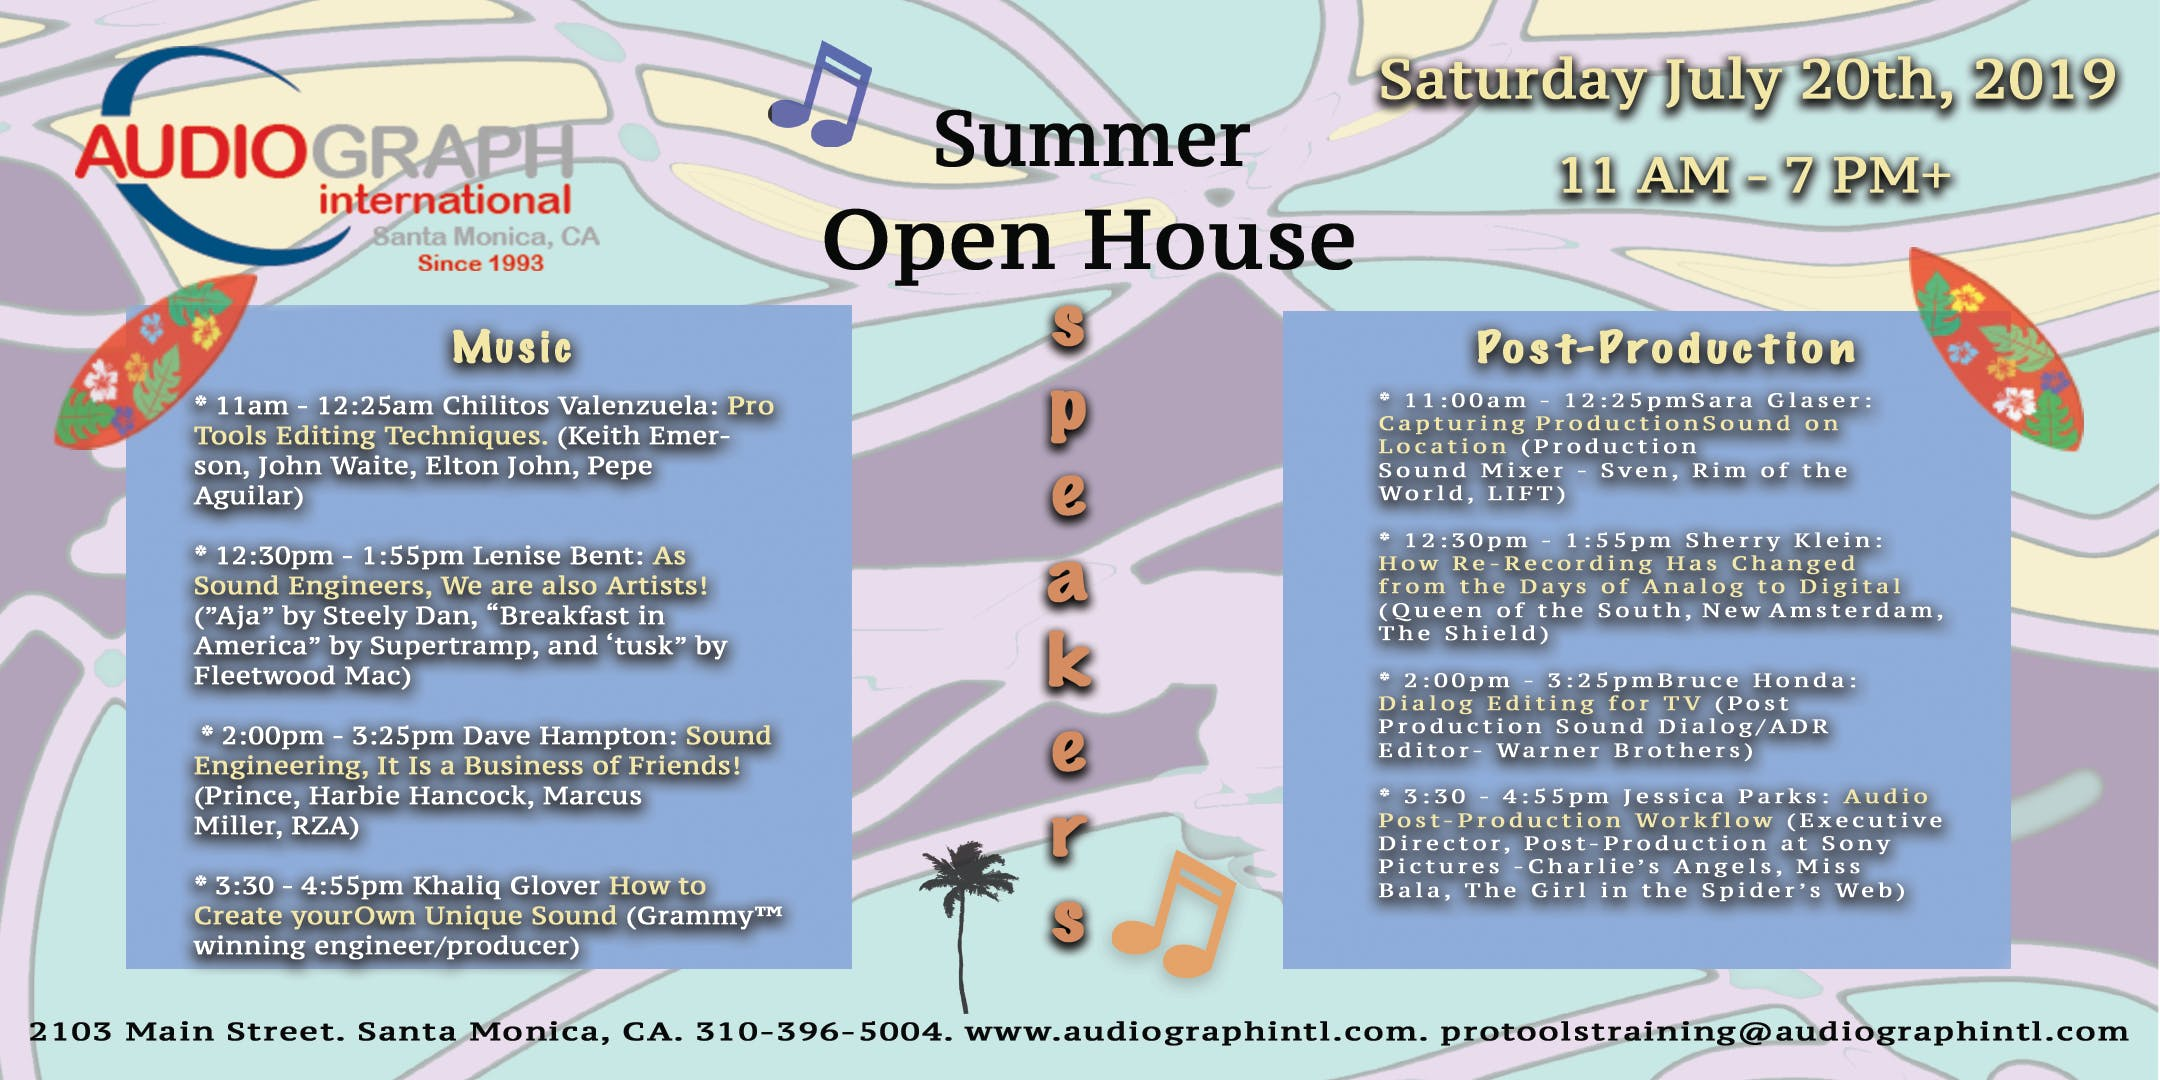 Agi S Summer Open House 20 Jul 2019 Never miss another show from marcus parks. evensi